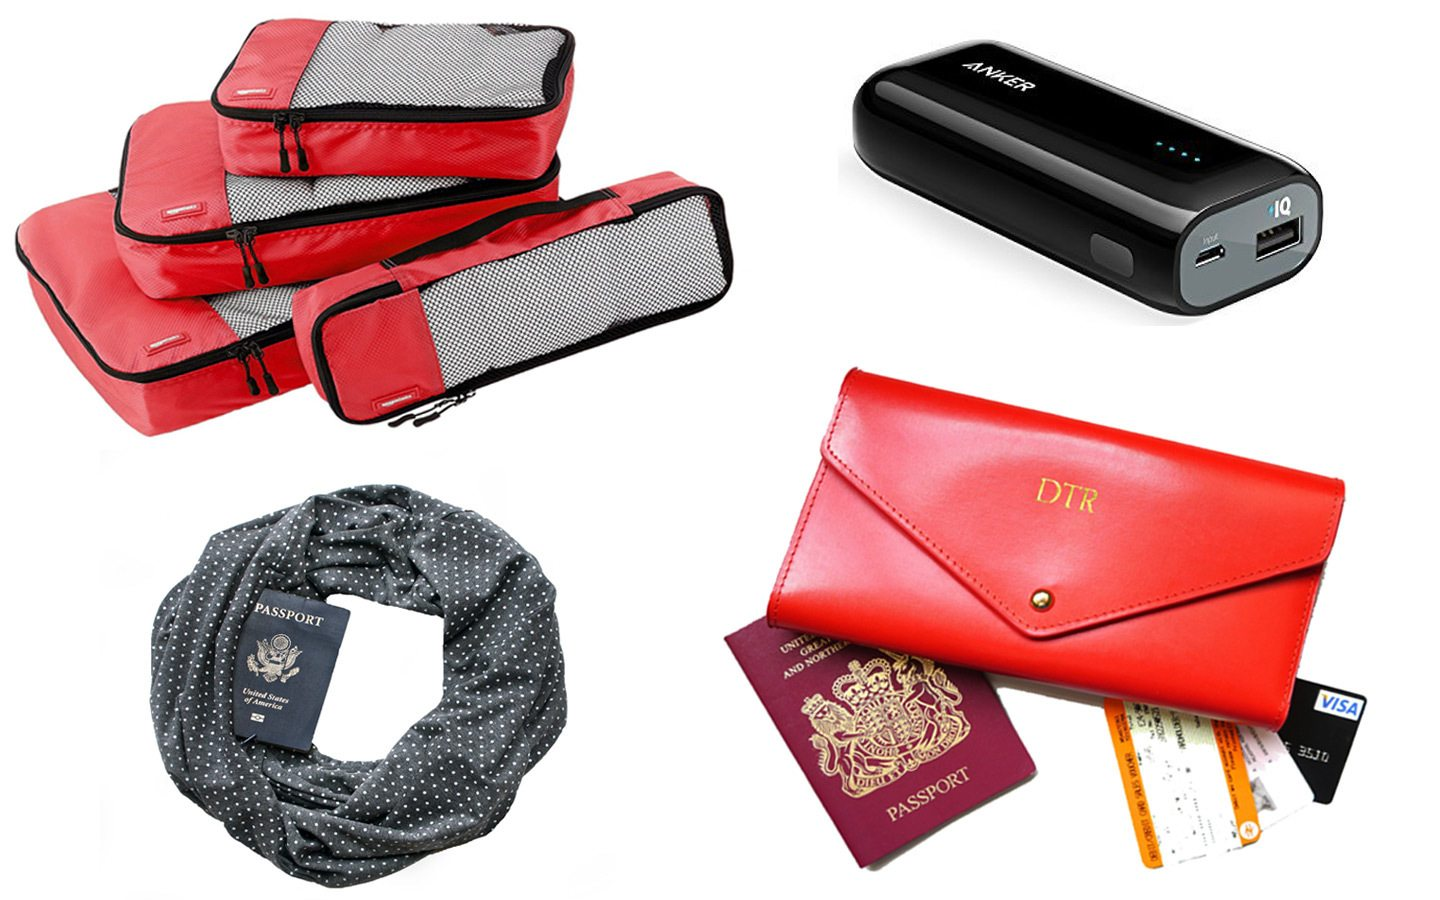 Travel kit gifts for travel lovers